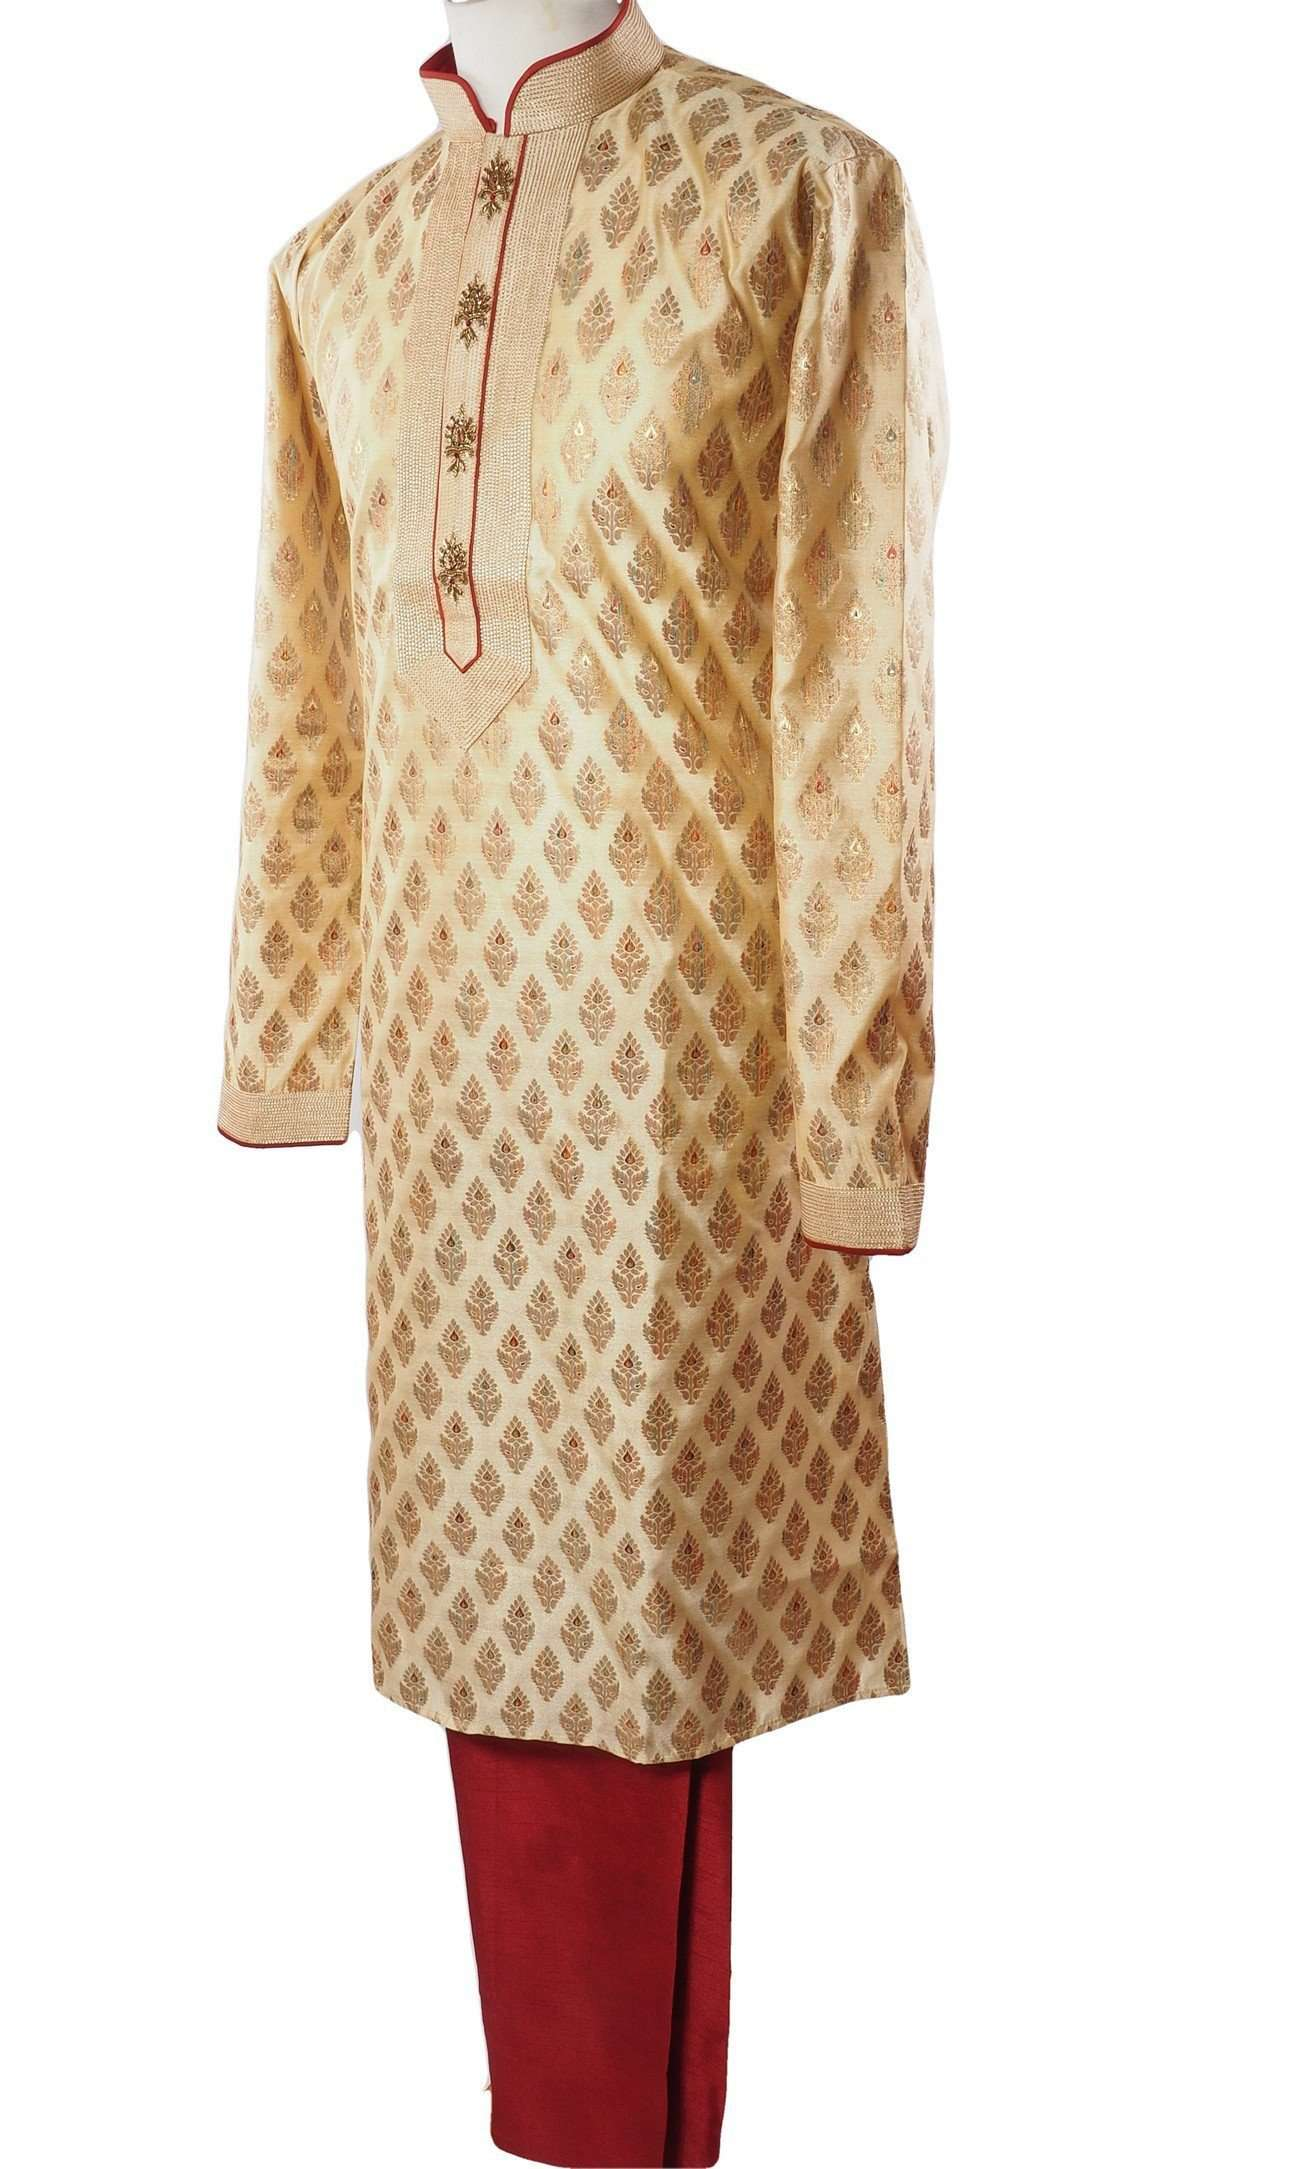 Mens Light Gold Kurta set with hand embroidery - Bollywood, Weddings, Fancy Dress - SNC5842JJ - Prachy Creations